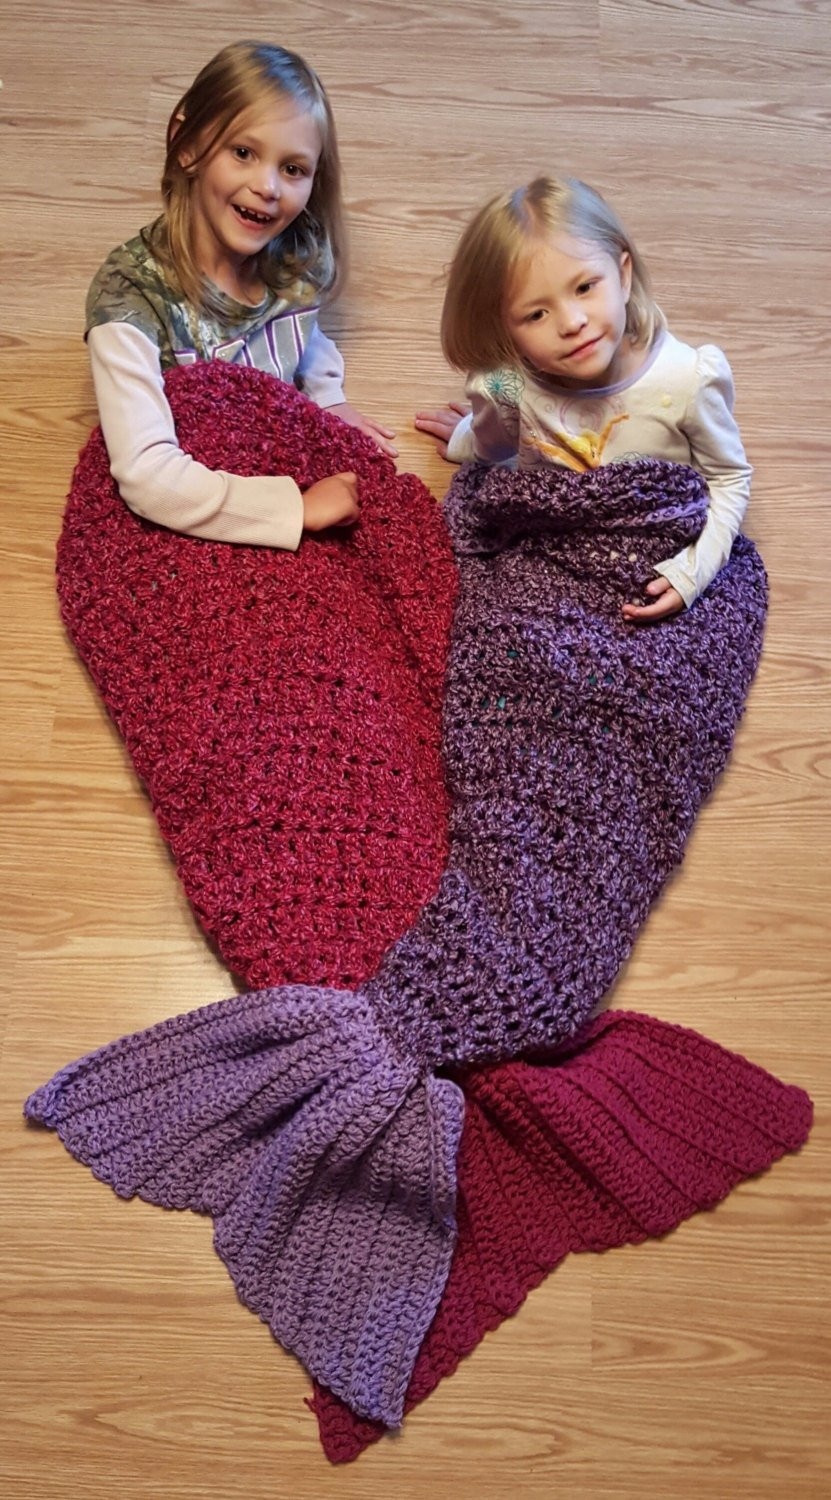 Crochet Mermaid Blanket Lovely Crochet Mermaid Blanket Of Unique 48 Images Crochet Mermaid Blanket